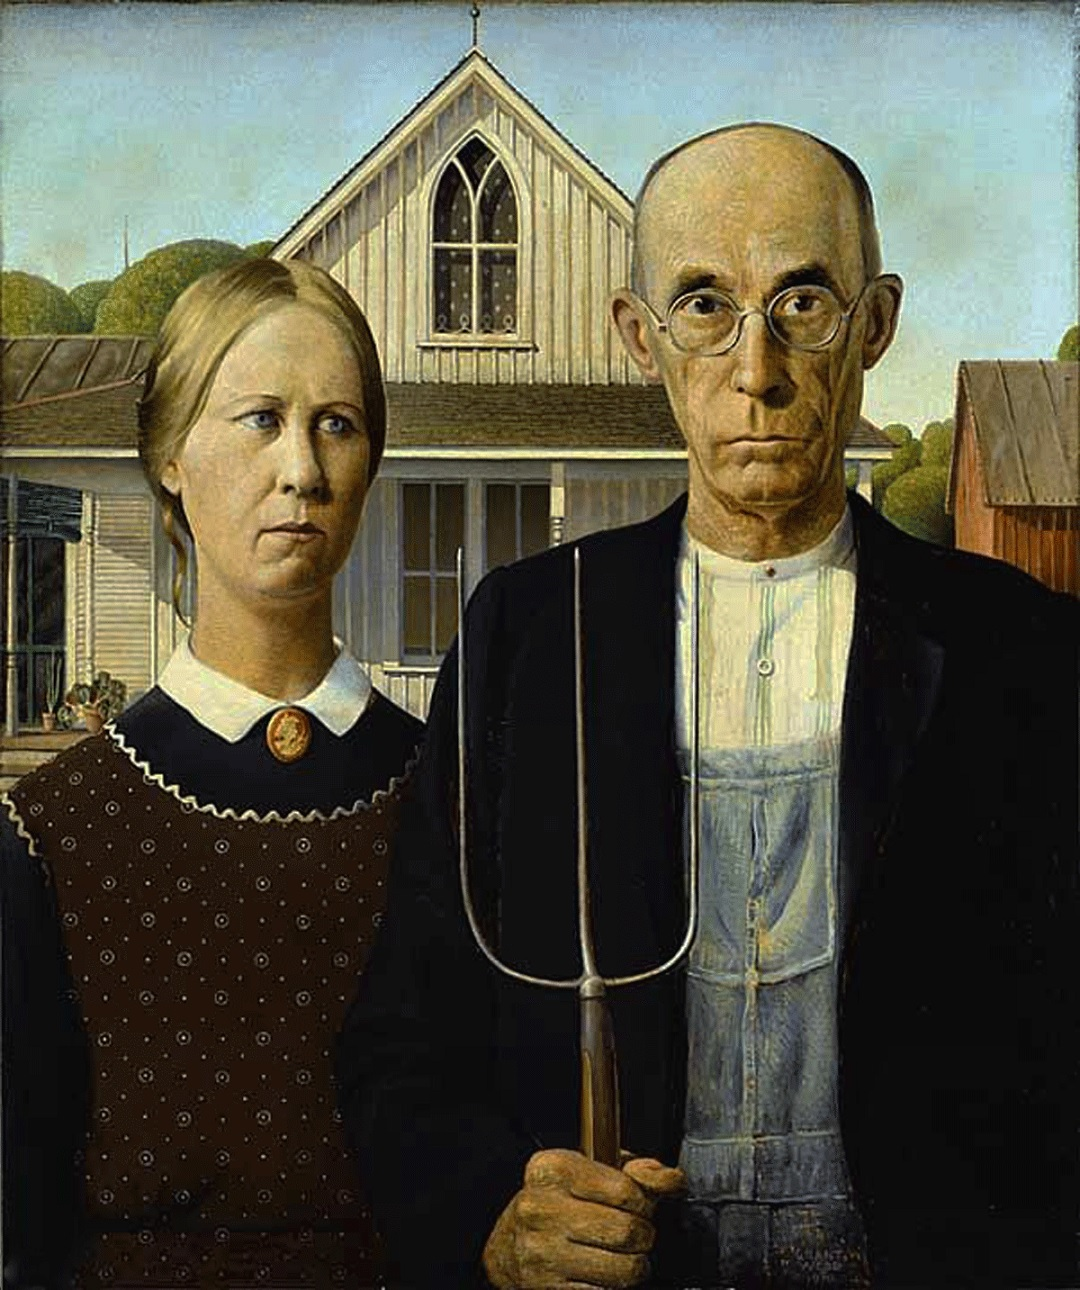 American Gothic grant wood painting